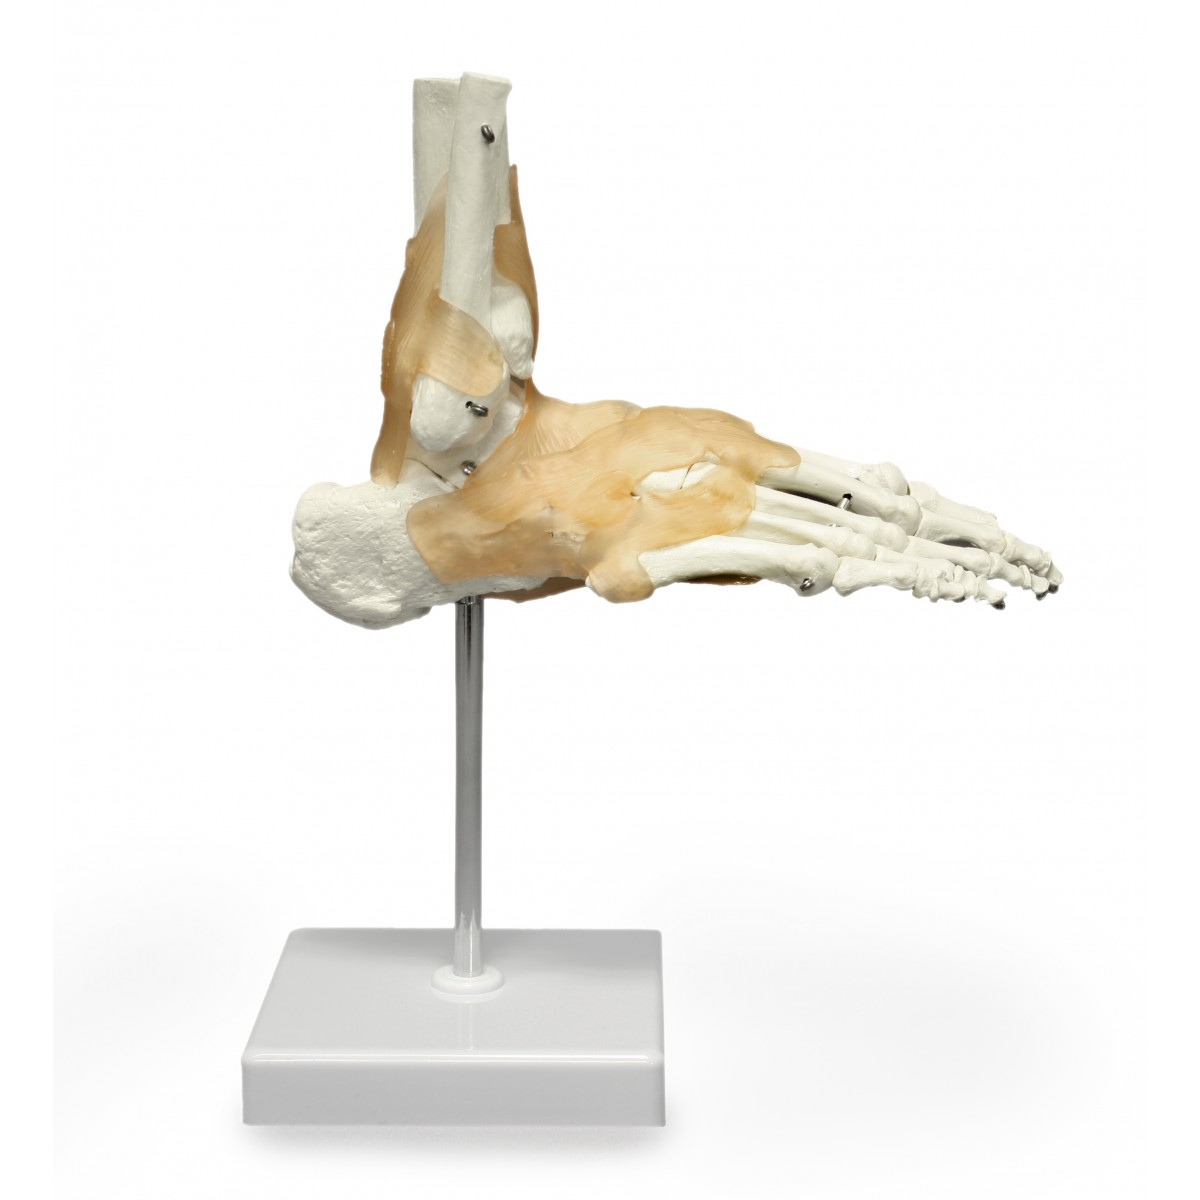 Walter Right Foot and Ankle w/ Ligaments - Joints - Skeletal System ...